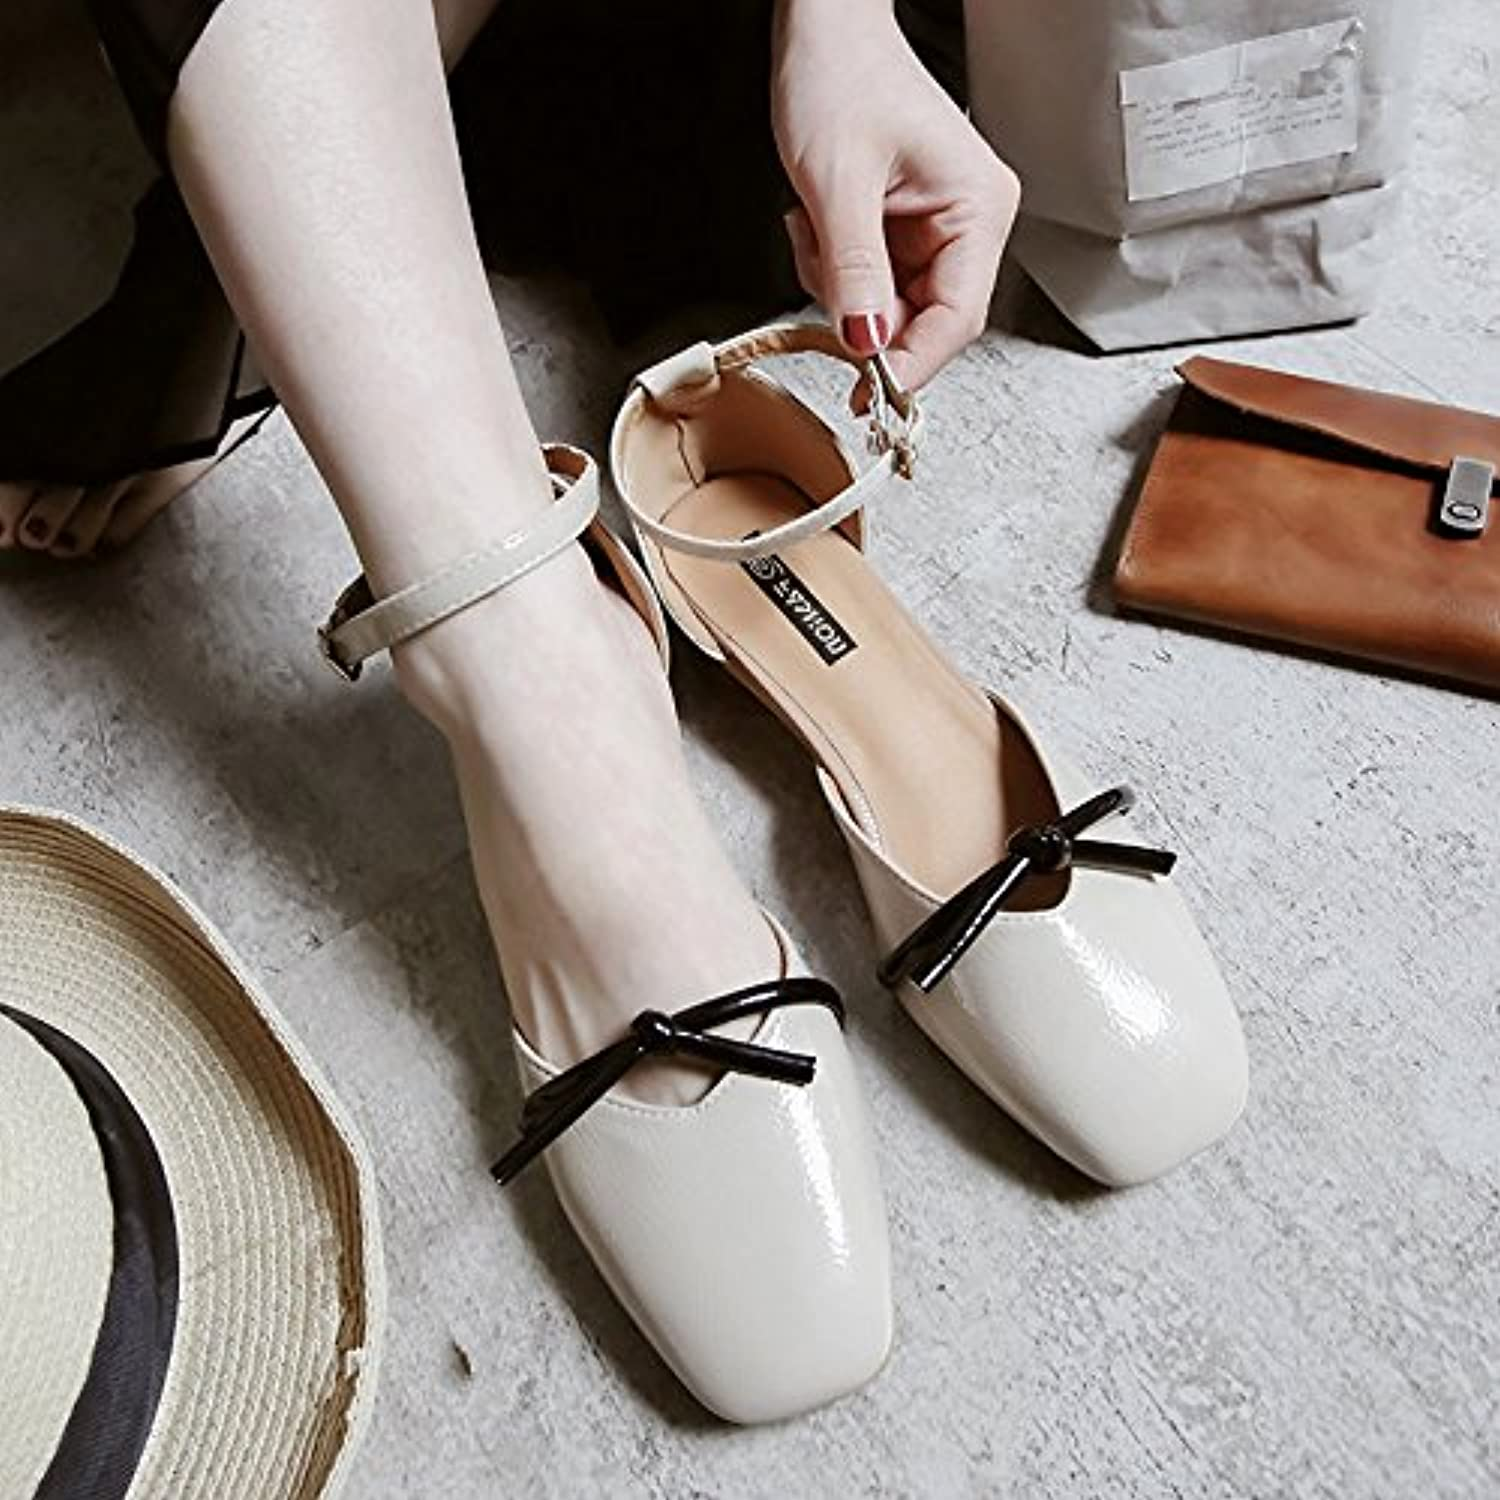 444a7b431469 GAOLIM Baotou Sandals Women Spring Spring Spring Women Shoes Rough With  Small Toe Shoes With A Shoe. B07BZJG64G Parent 06b75a